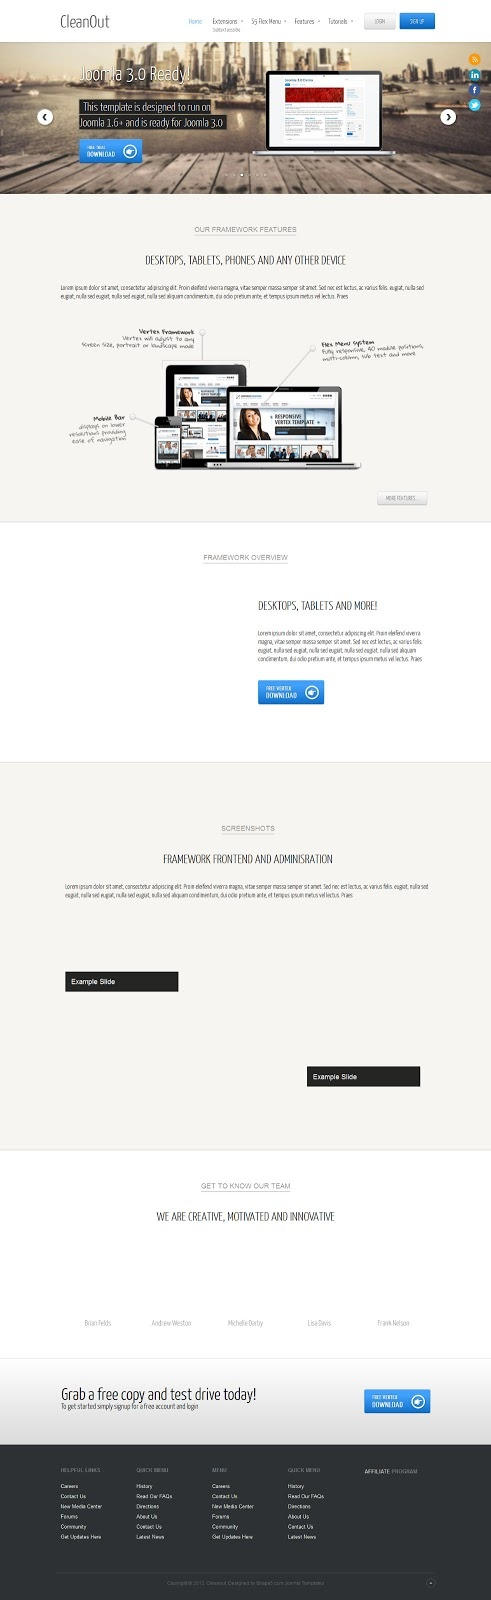 The CleanOut template is an amazing modern design for a site - copy free blueprint design app